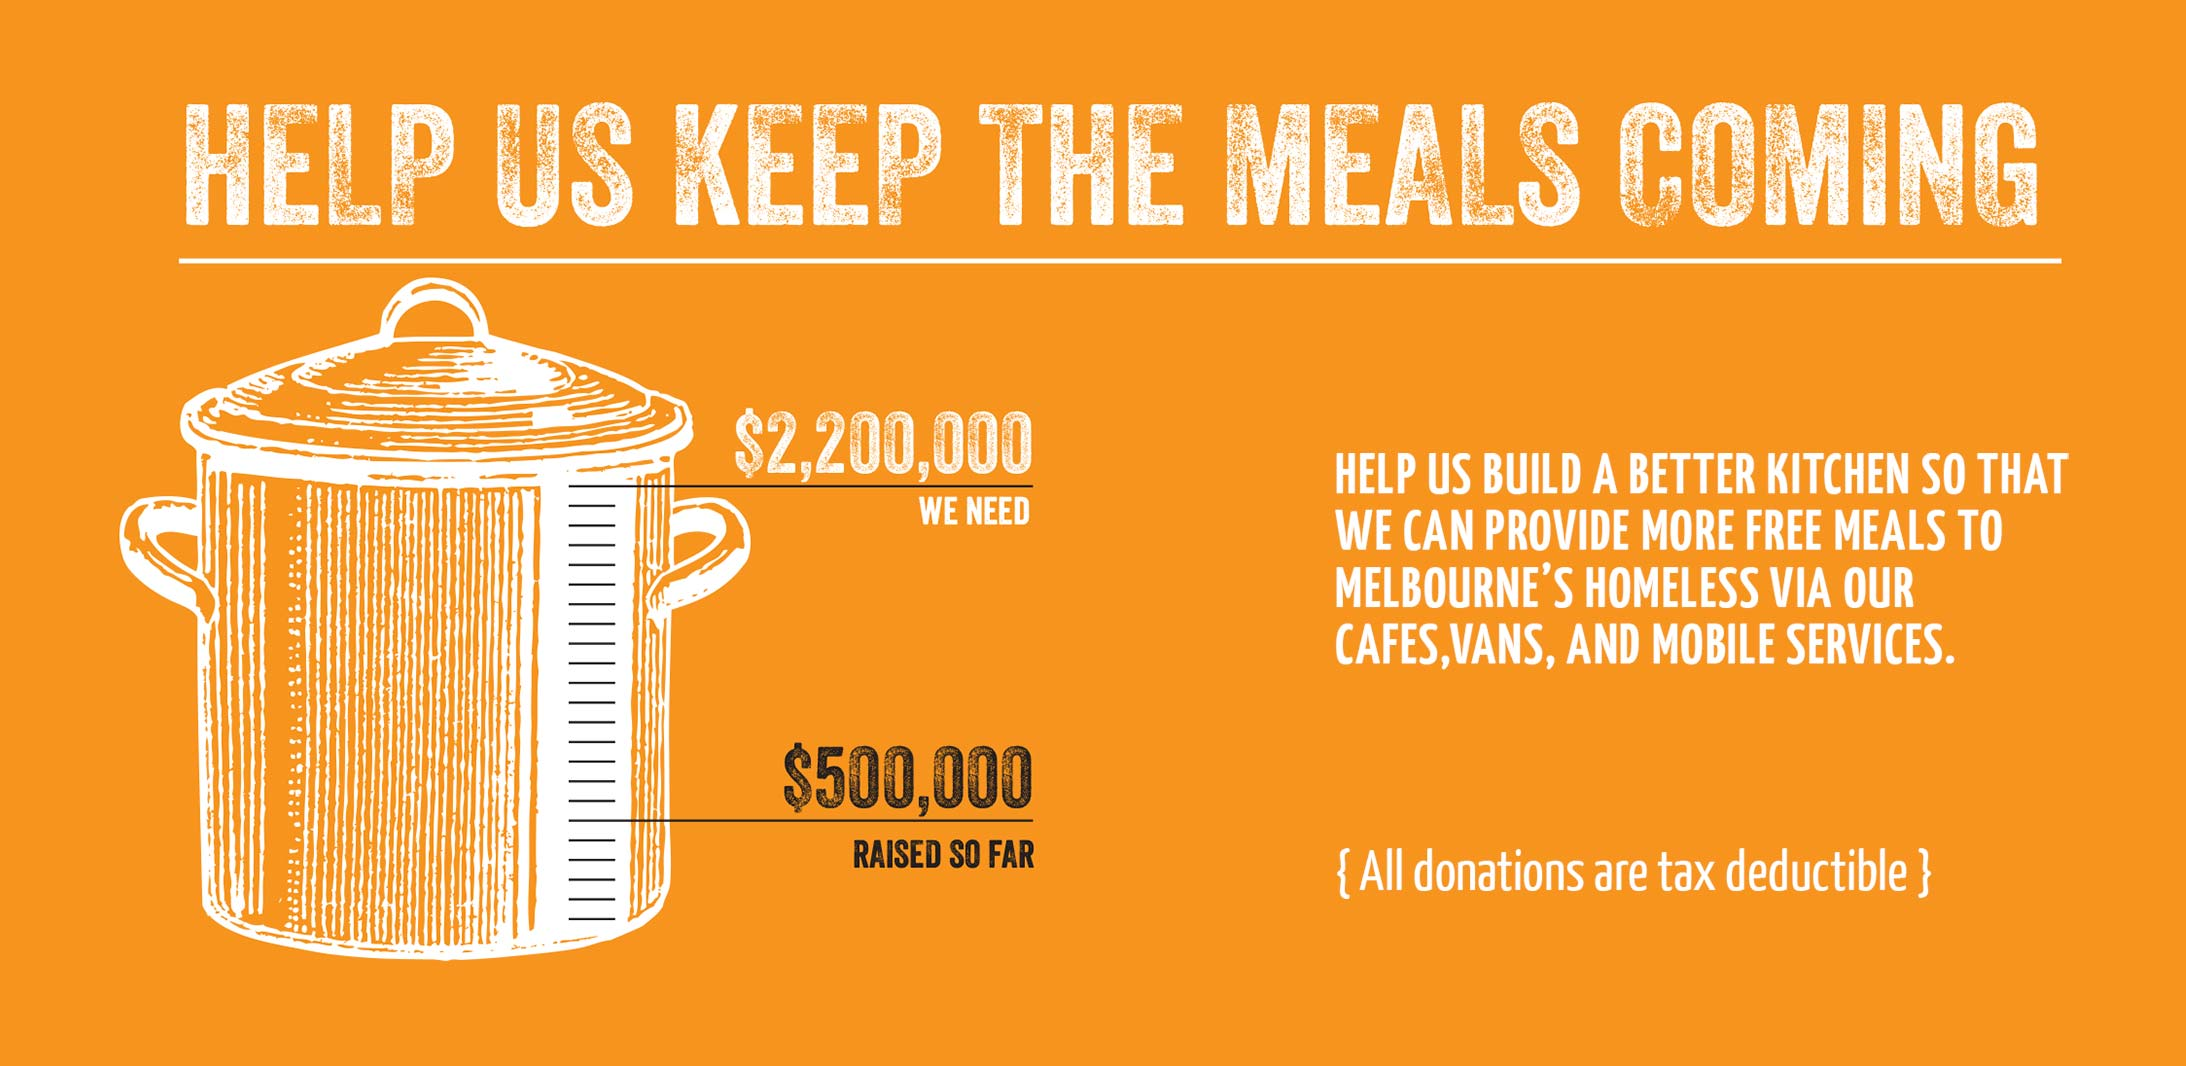 Help us keep the meals coming